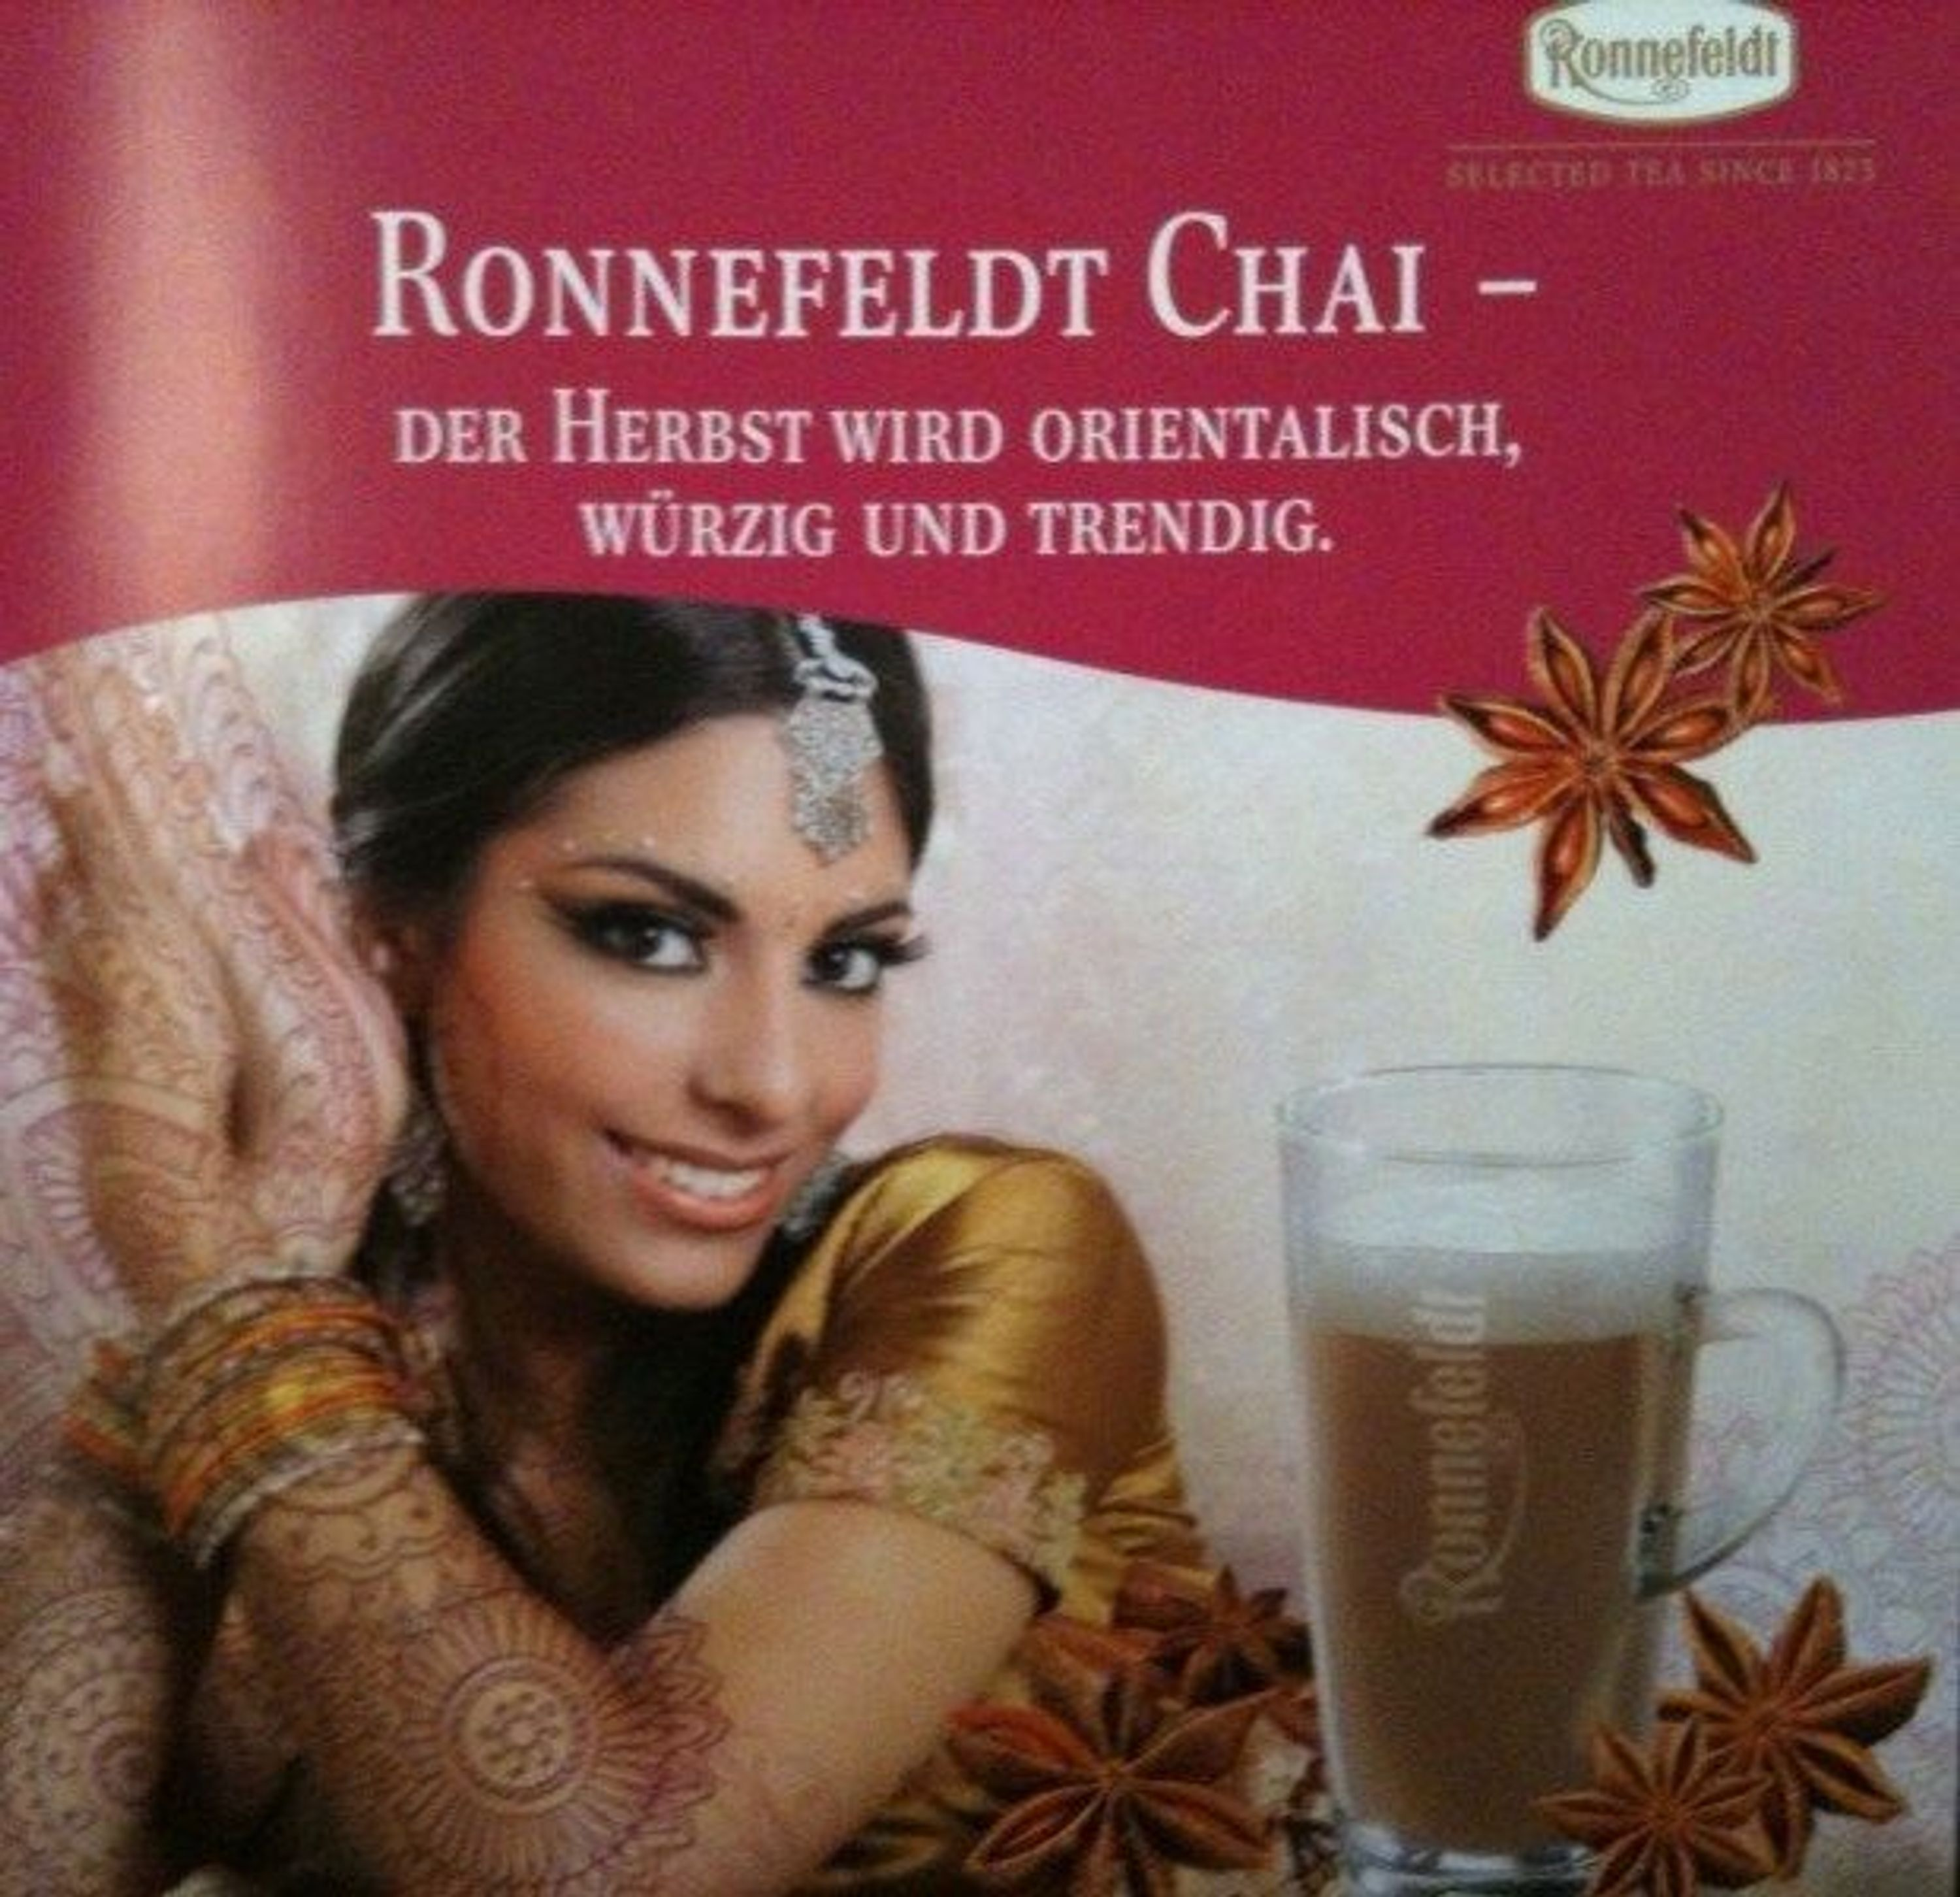 ronnefeldt schoko chai gew rztee chai latte 100g loser tee kaufen bei. Black Bedroom Furniture Sets. Home Design Ideas